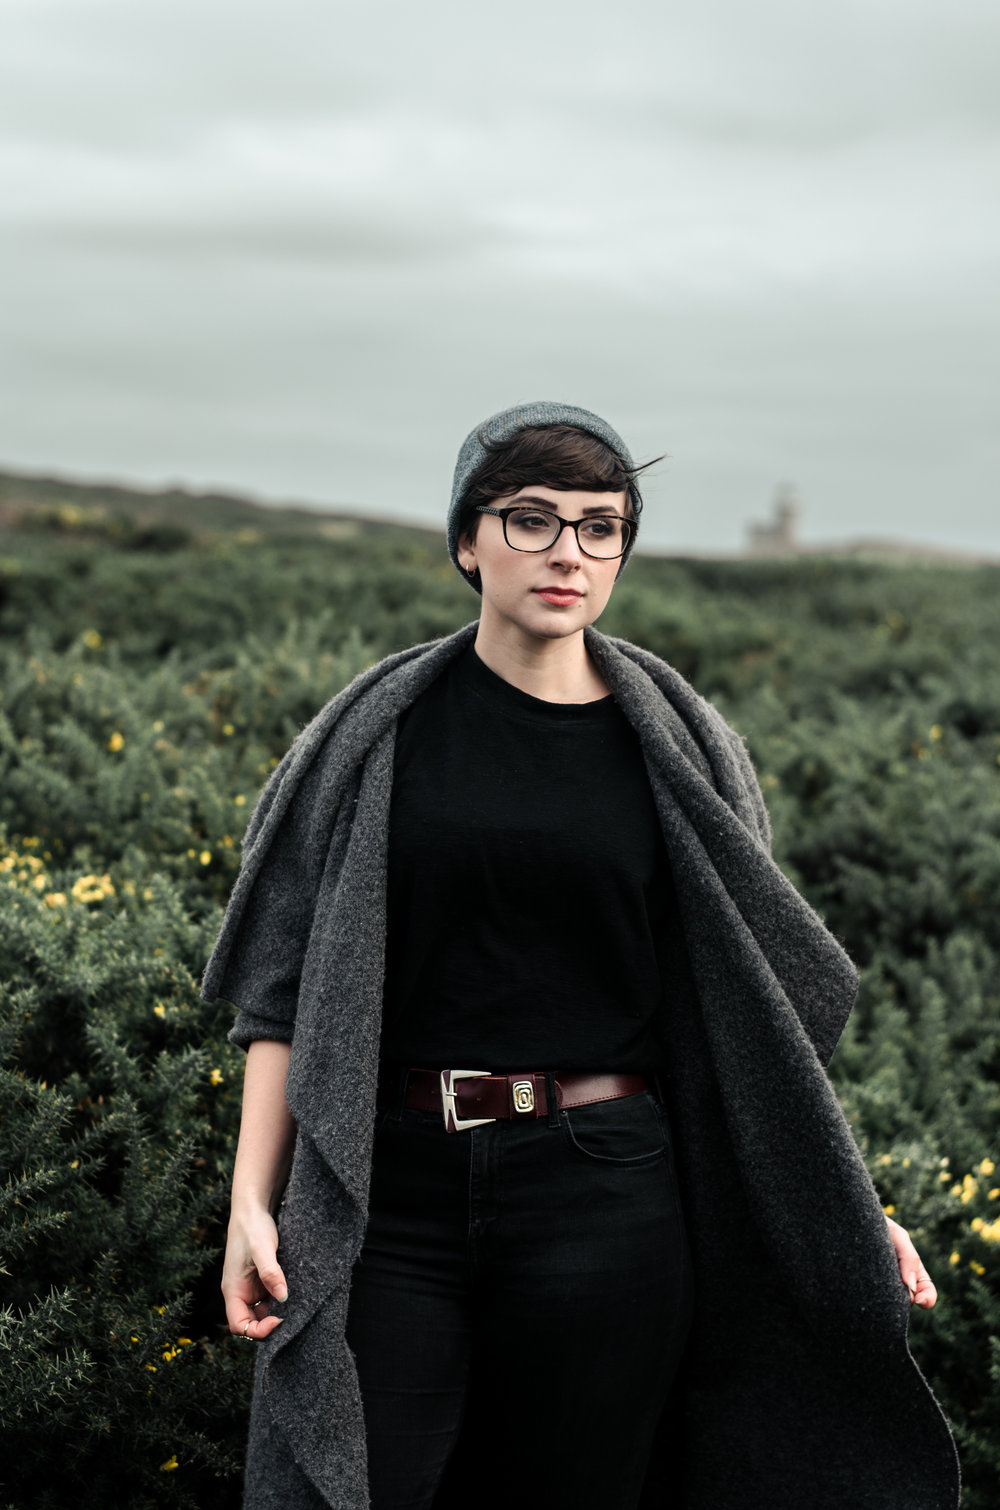 Jess - Birling Gap - Portraits - Aiste Saulyte Photography - 2017-11-9-35.jpg